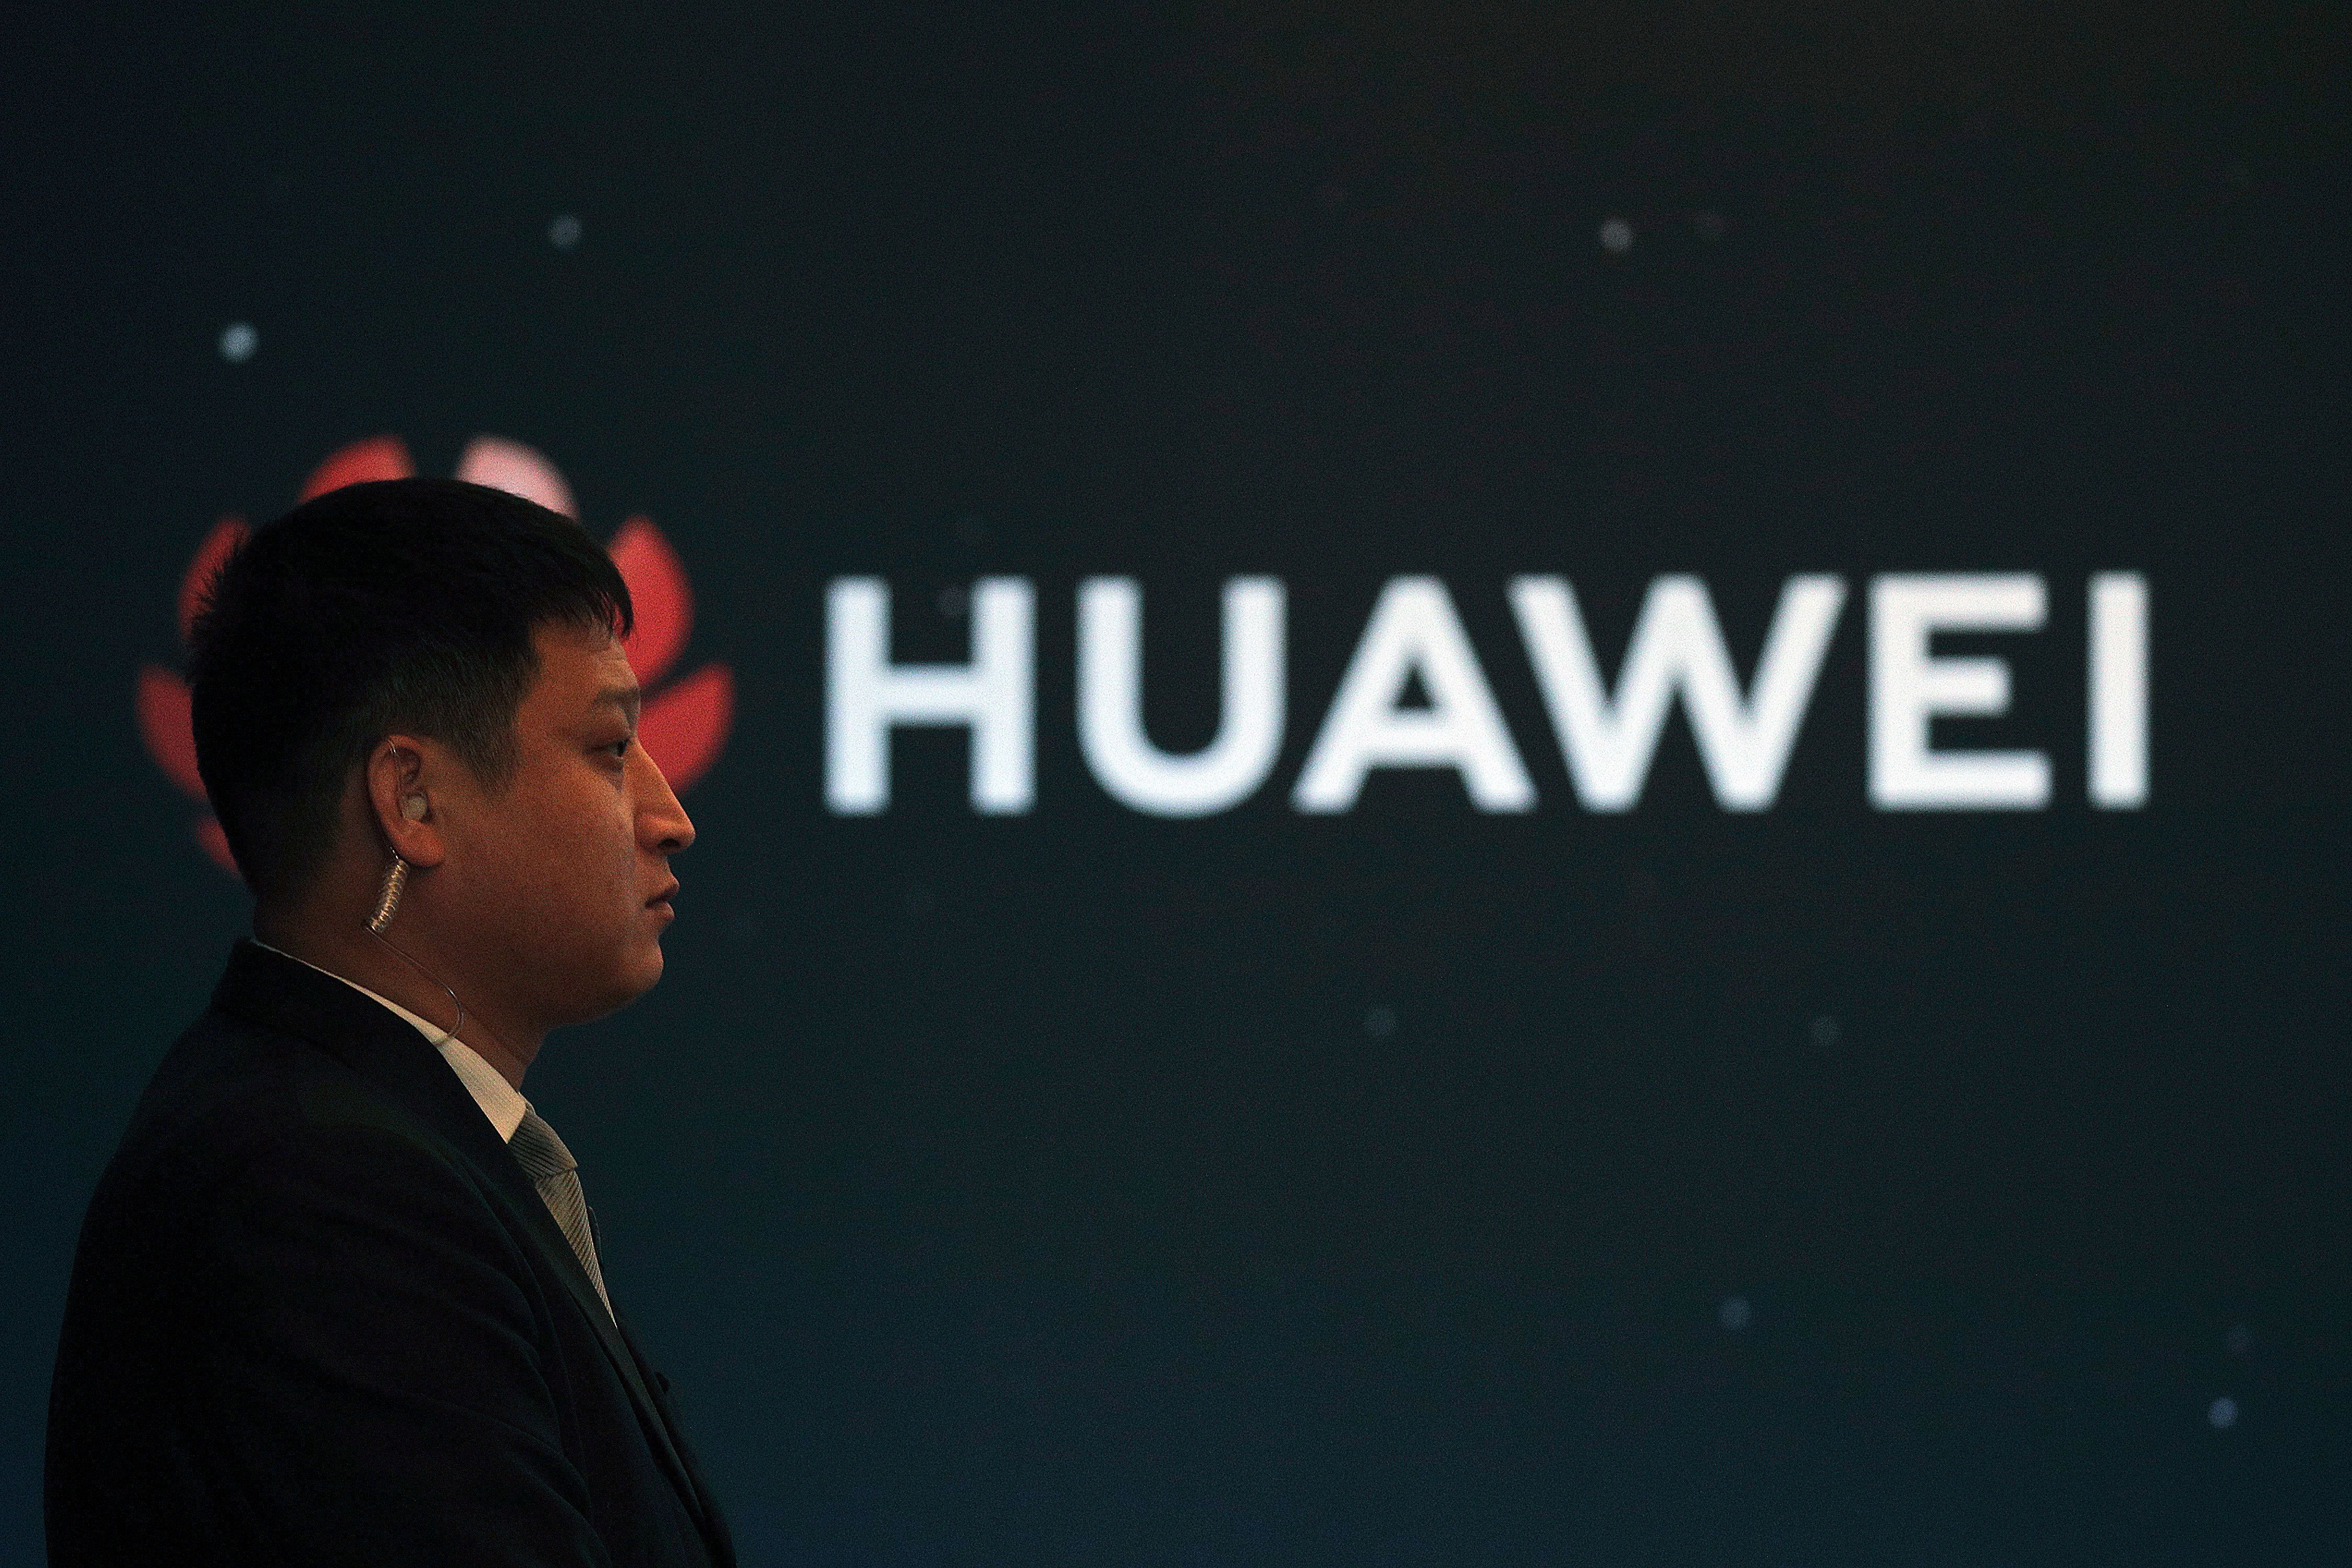 Westlake Legal Group 5c3b05632400003300486200 Chinese Tech Giant Huawei Fires Sales Director Accused By Poland Of Espionage